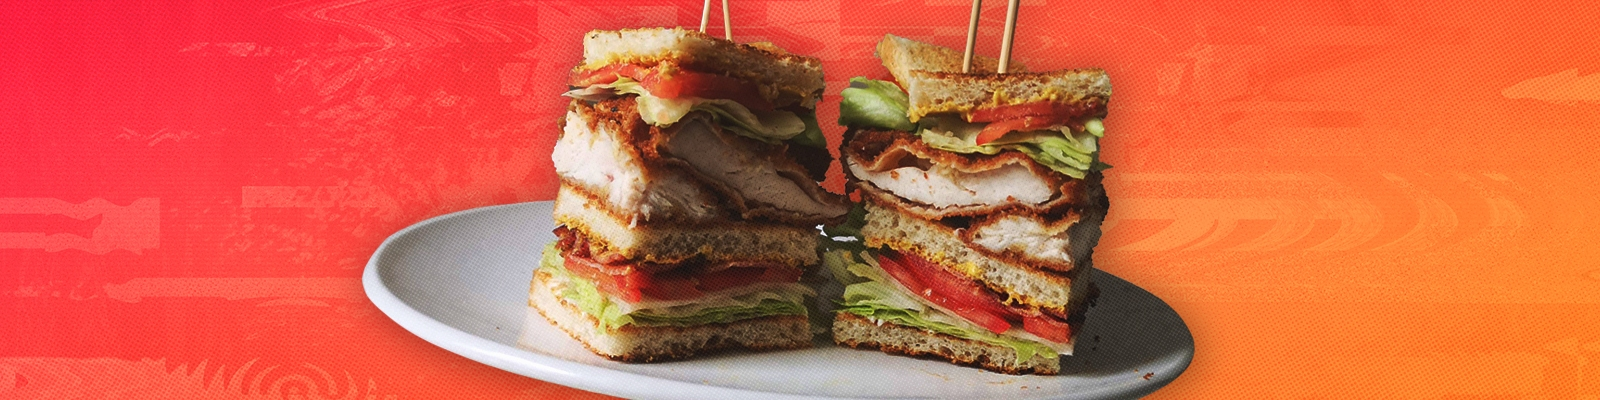 Late June Is Club Sandwich Season — Here's Our Recipe